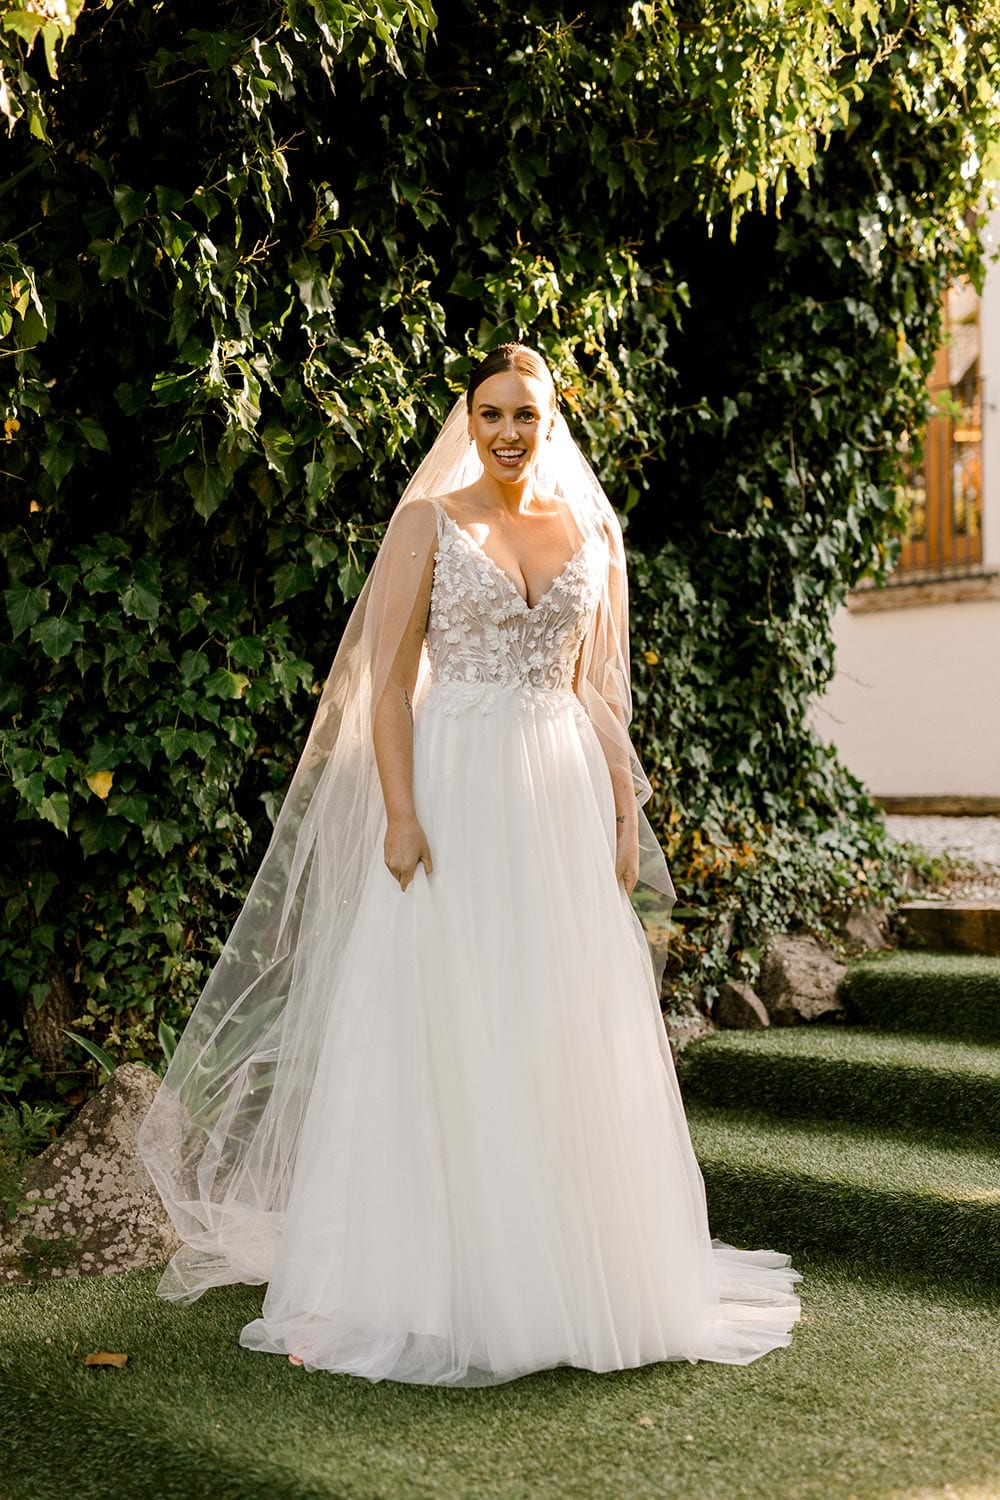 Serena Wedding Gown from Vinka Design - Classic & feminine wedding gown. Deep V-neckline semi-sheer structured bodice appliqued with flowers & leaves. Dreamy layered soft tulle skirt with side-split. Photograph in landscaped gardens.